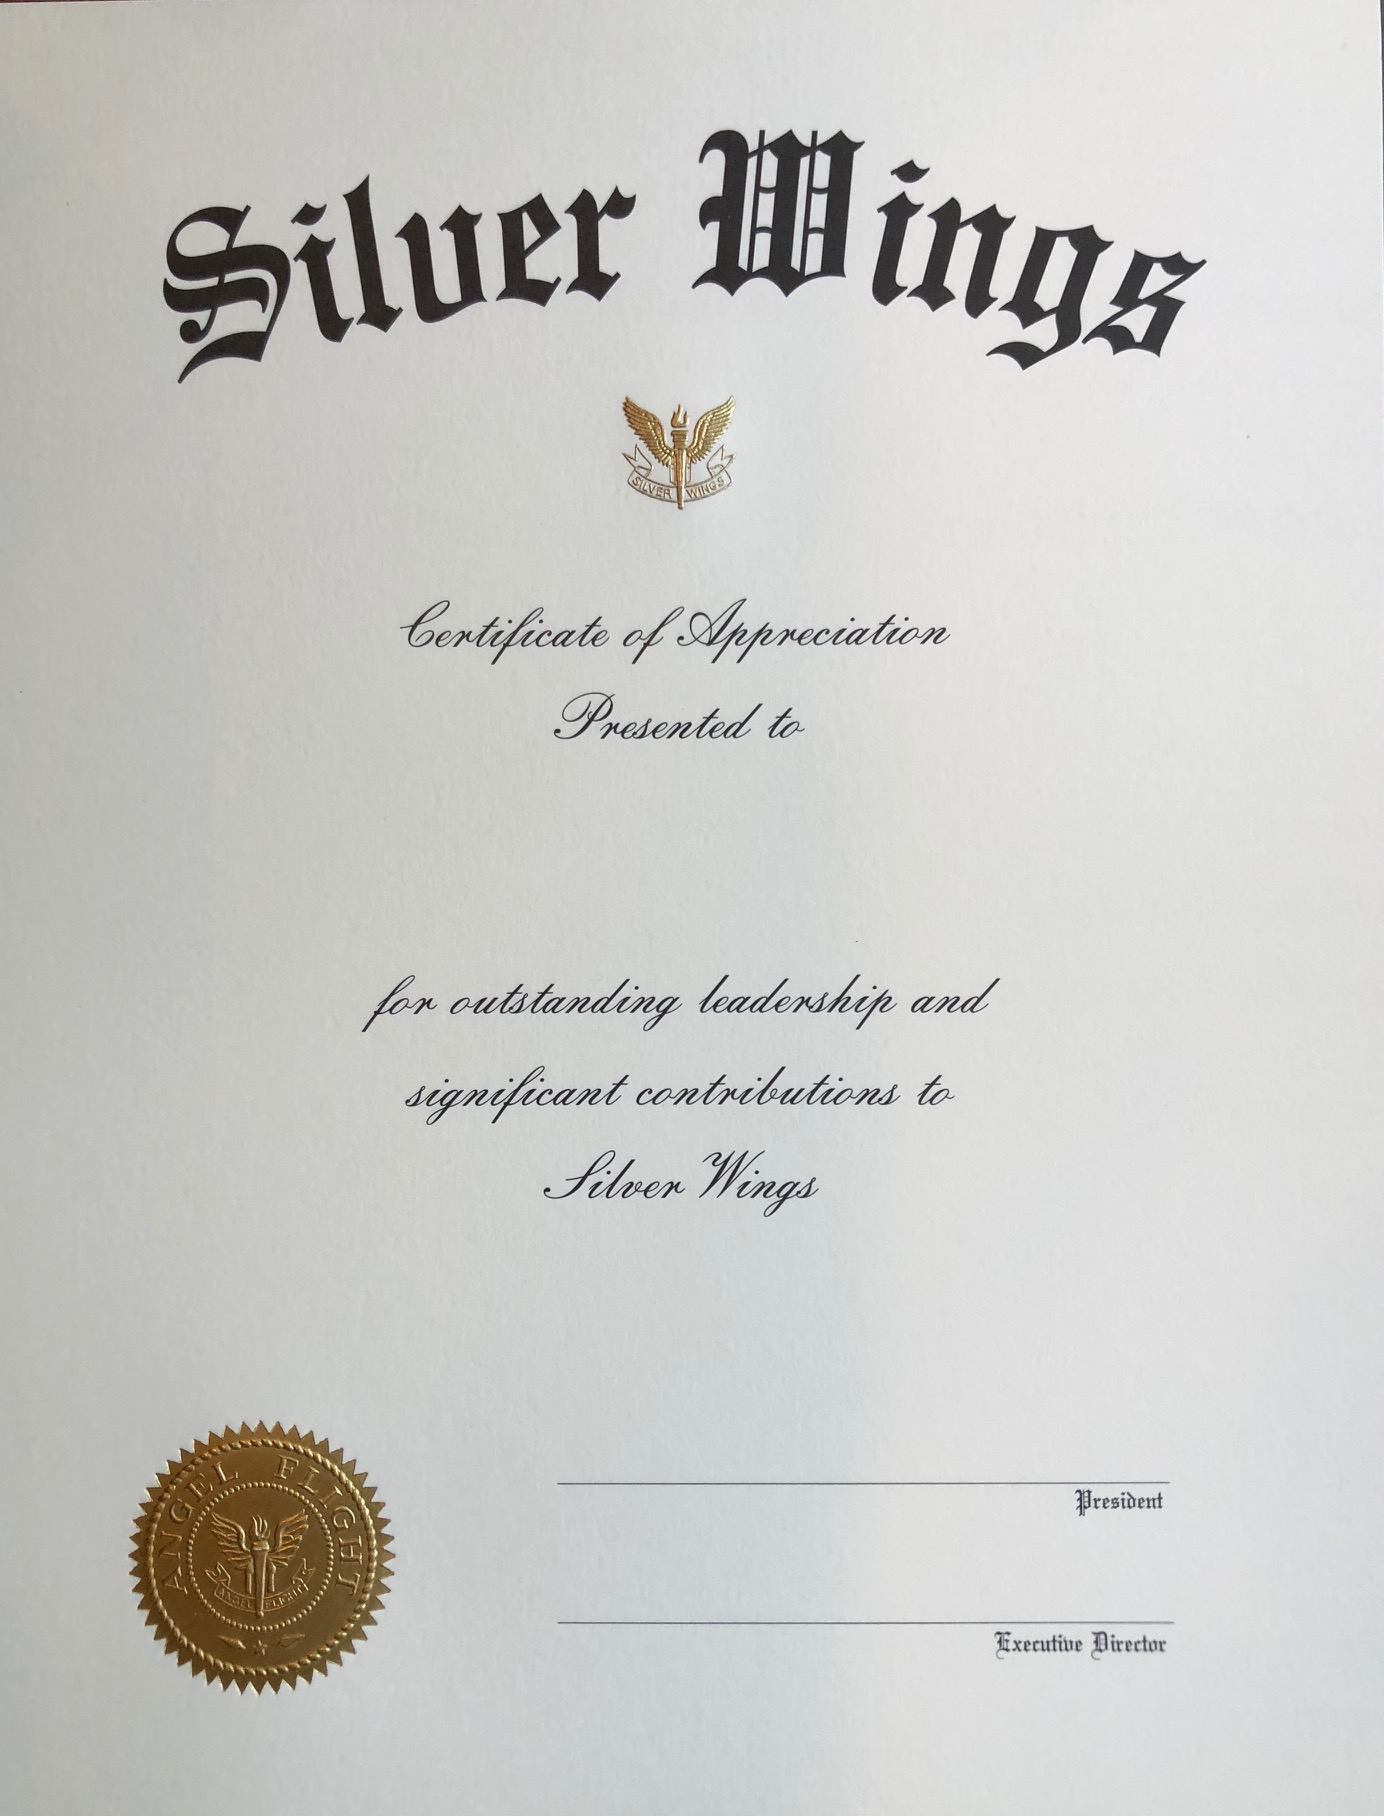 22a85831b86 Arnold Air Society   Silver WingsSW Appreciation Certificate